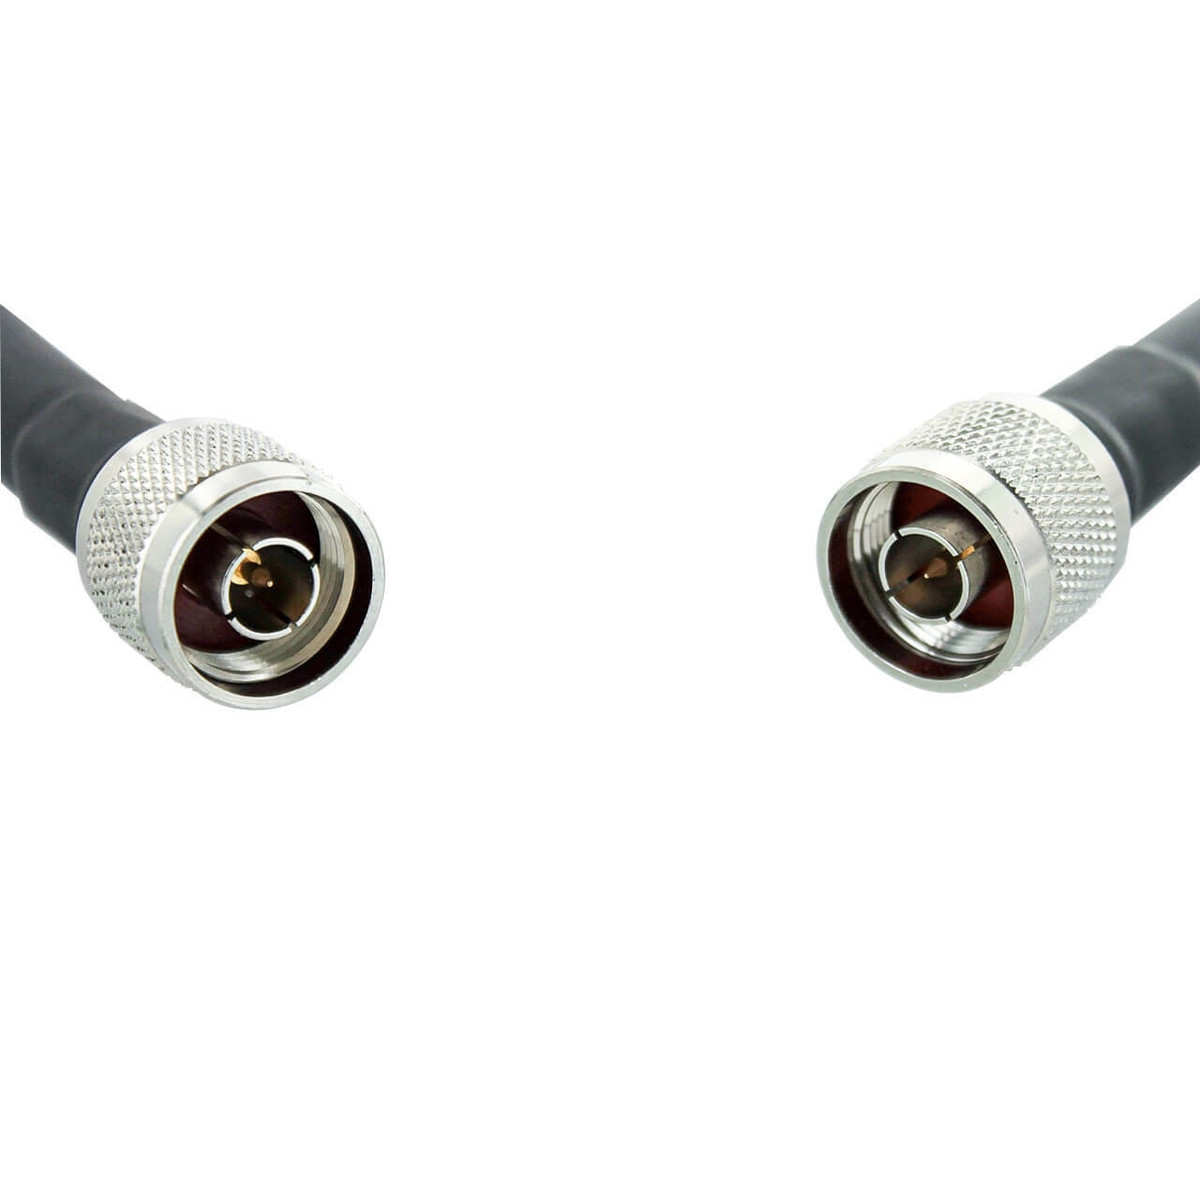 Bolton Technical N-Male to N-Male Bolton400 Ultra Low-Loss Coax Cable | 60 ft. Cable